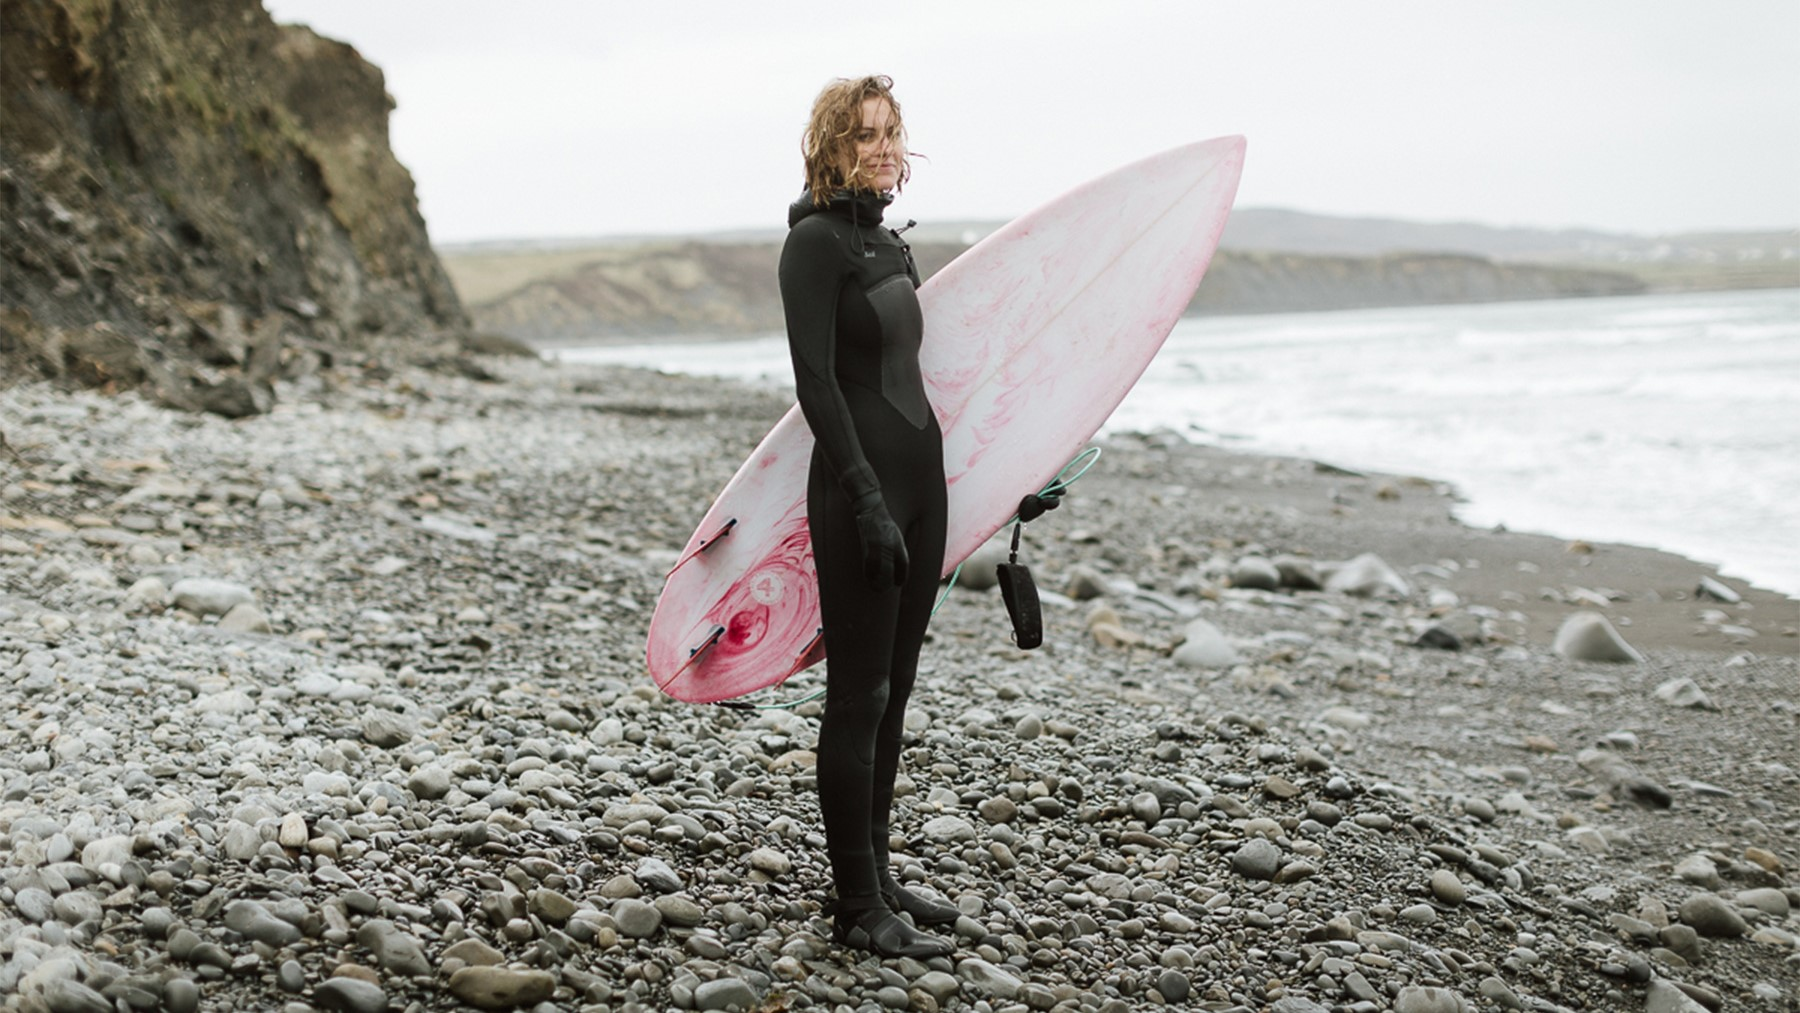 Sophie Hellyer Surf Simply Tom Shaw pink surfboard believe in equal pay fullwidth